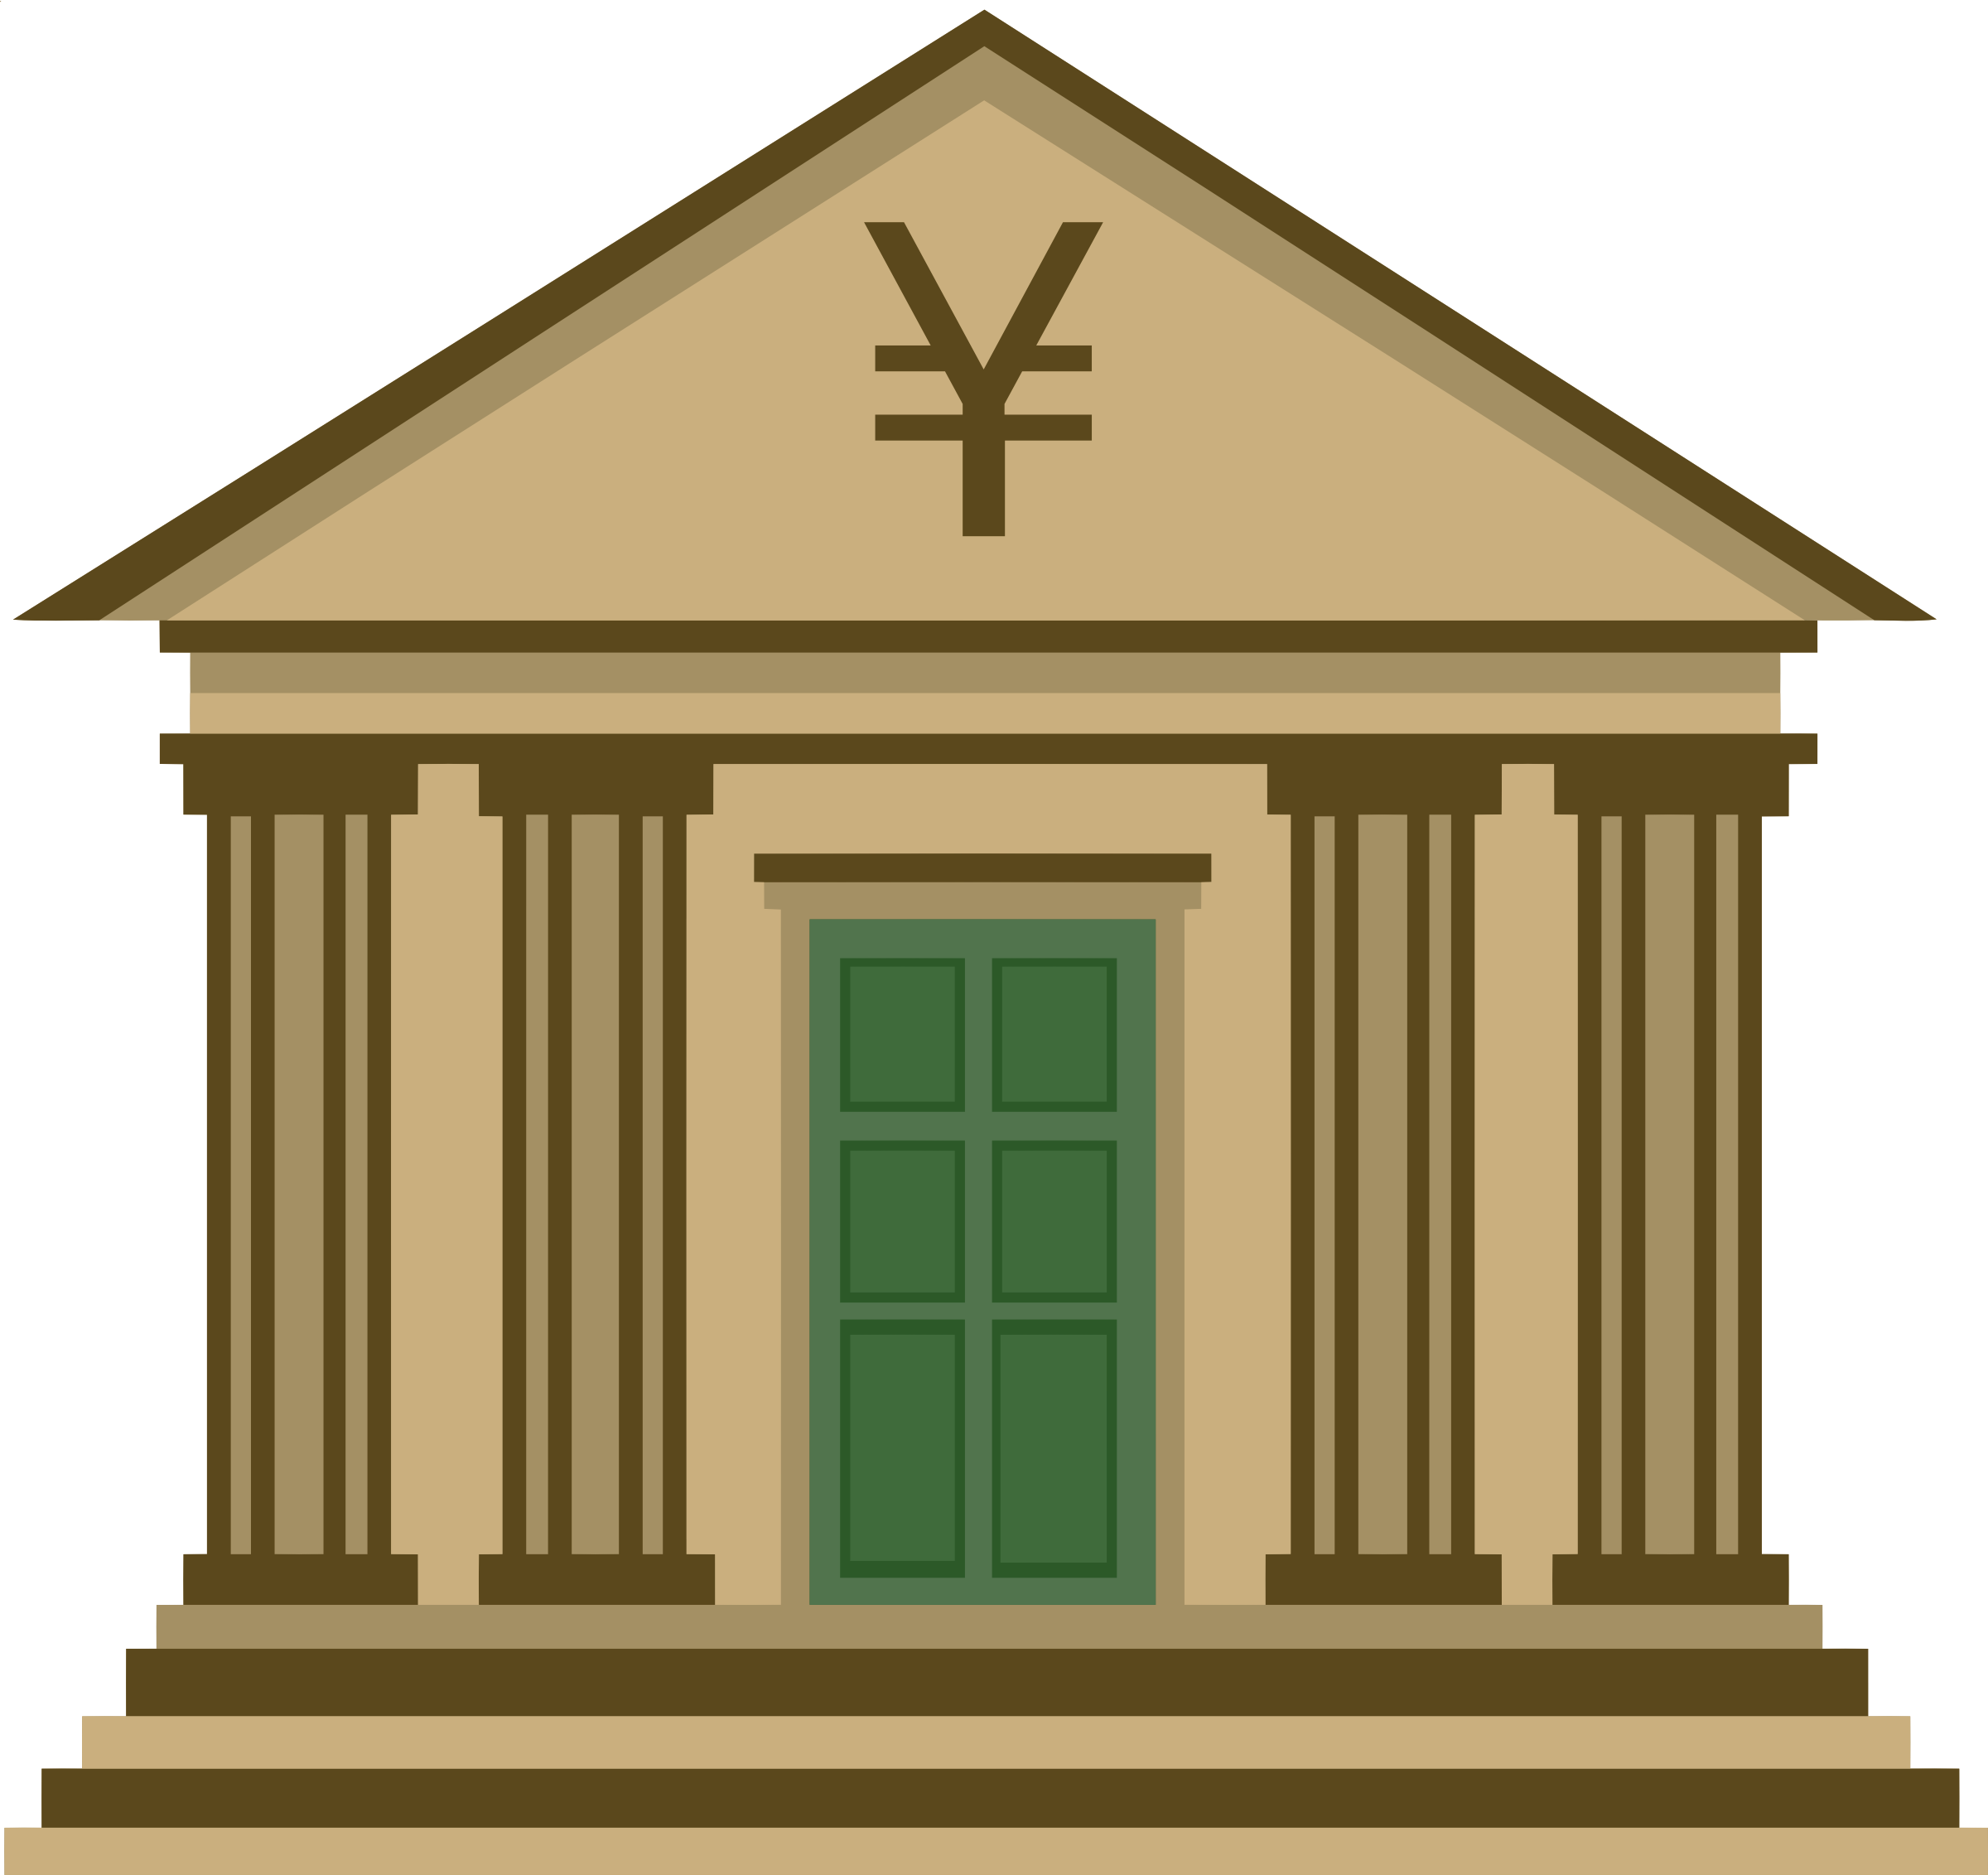 Bank clipart place, Bank place Transparent FREE for download.